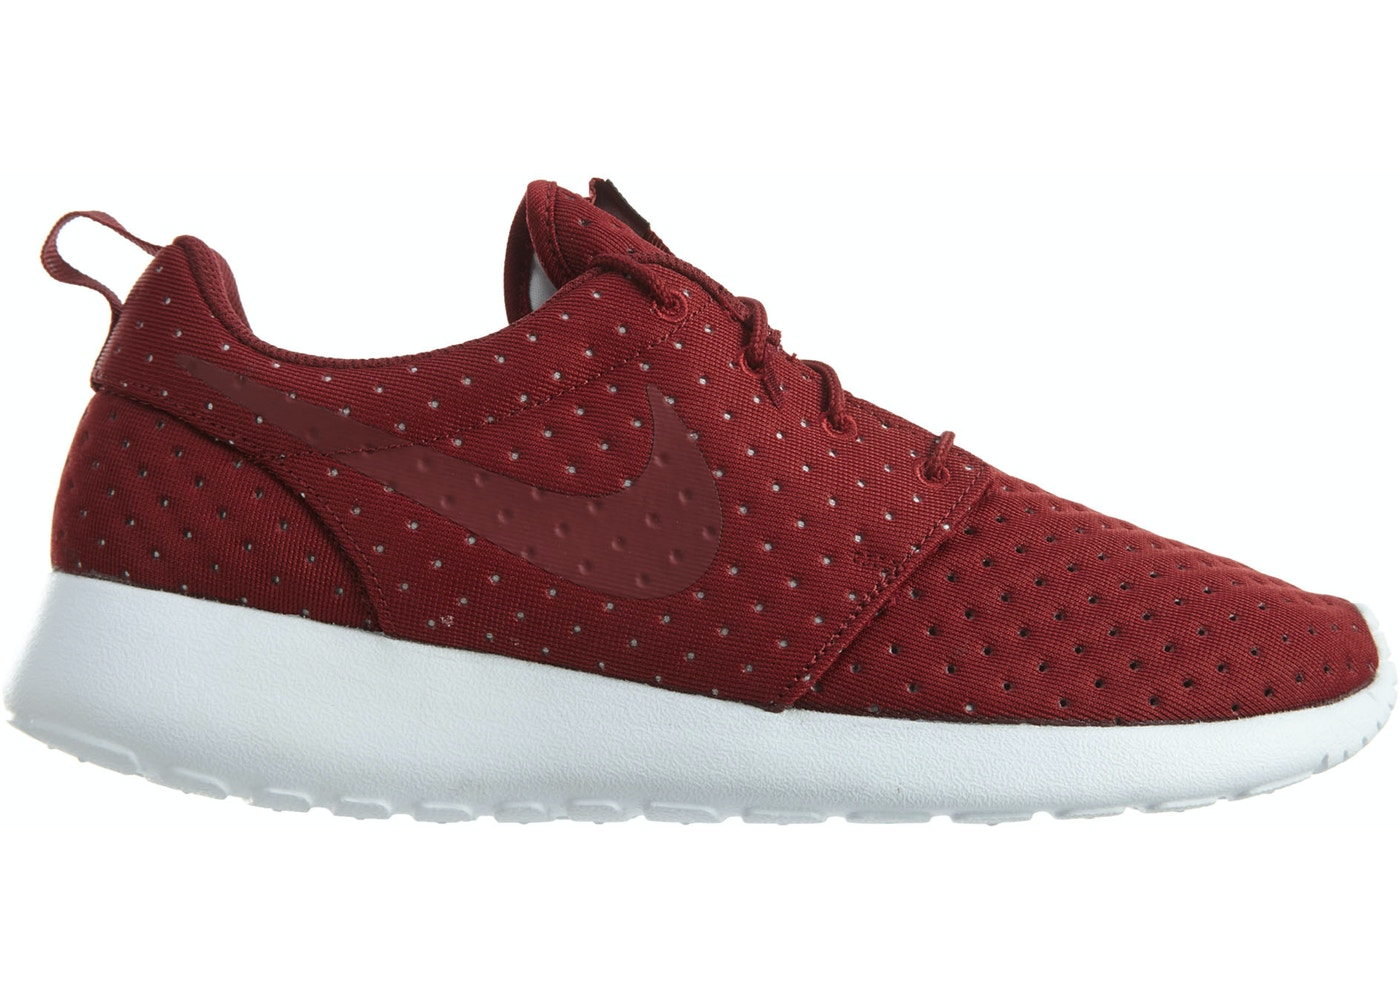 half off 591a6 b1f99 ... Nike Roshe One Se Team Red Team Red-White - 844687-601 ...